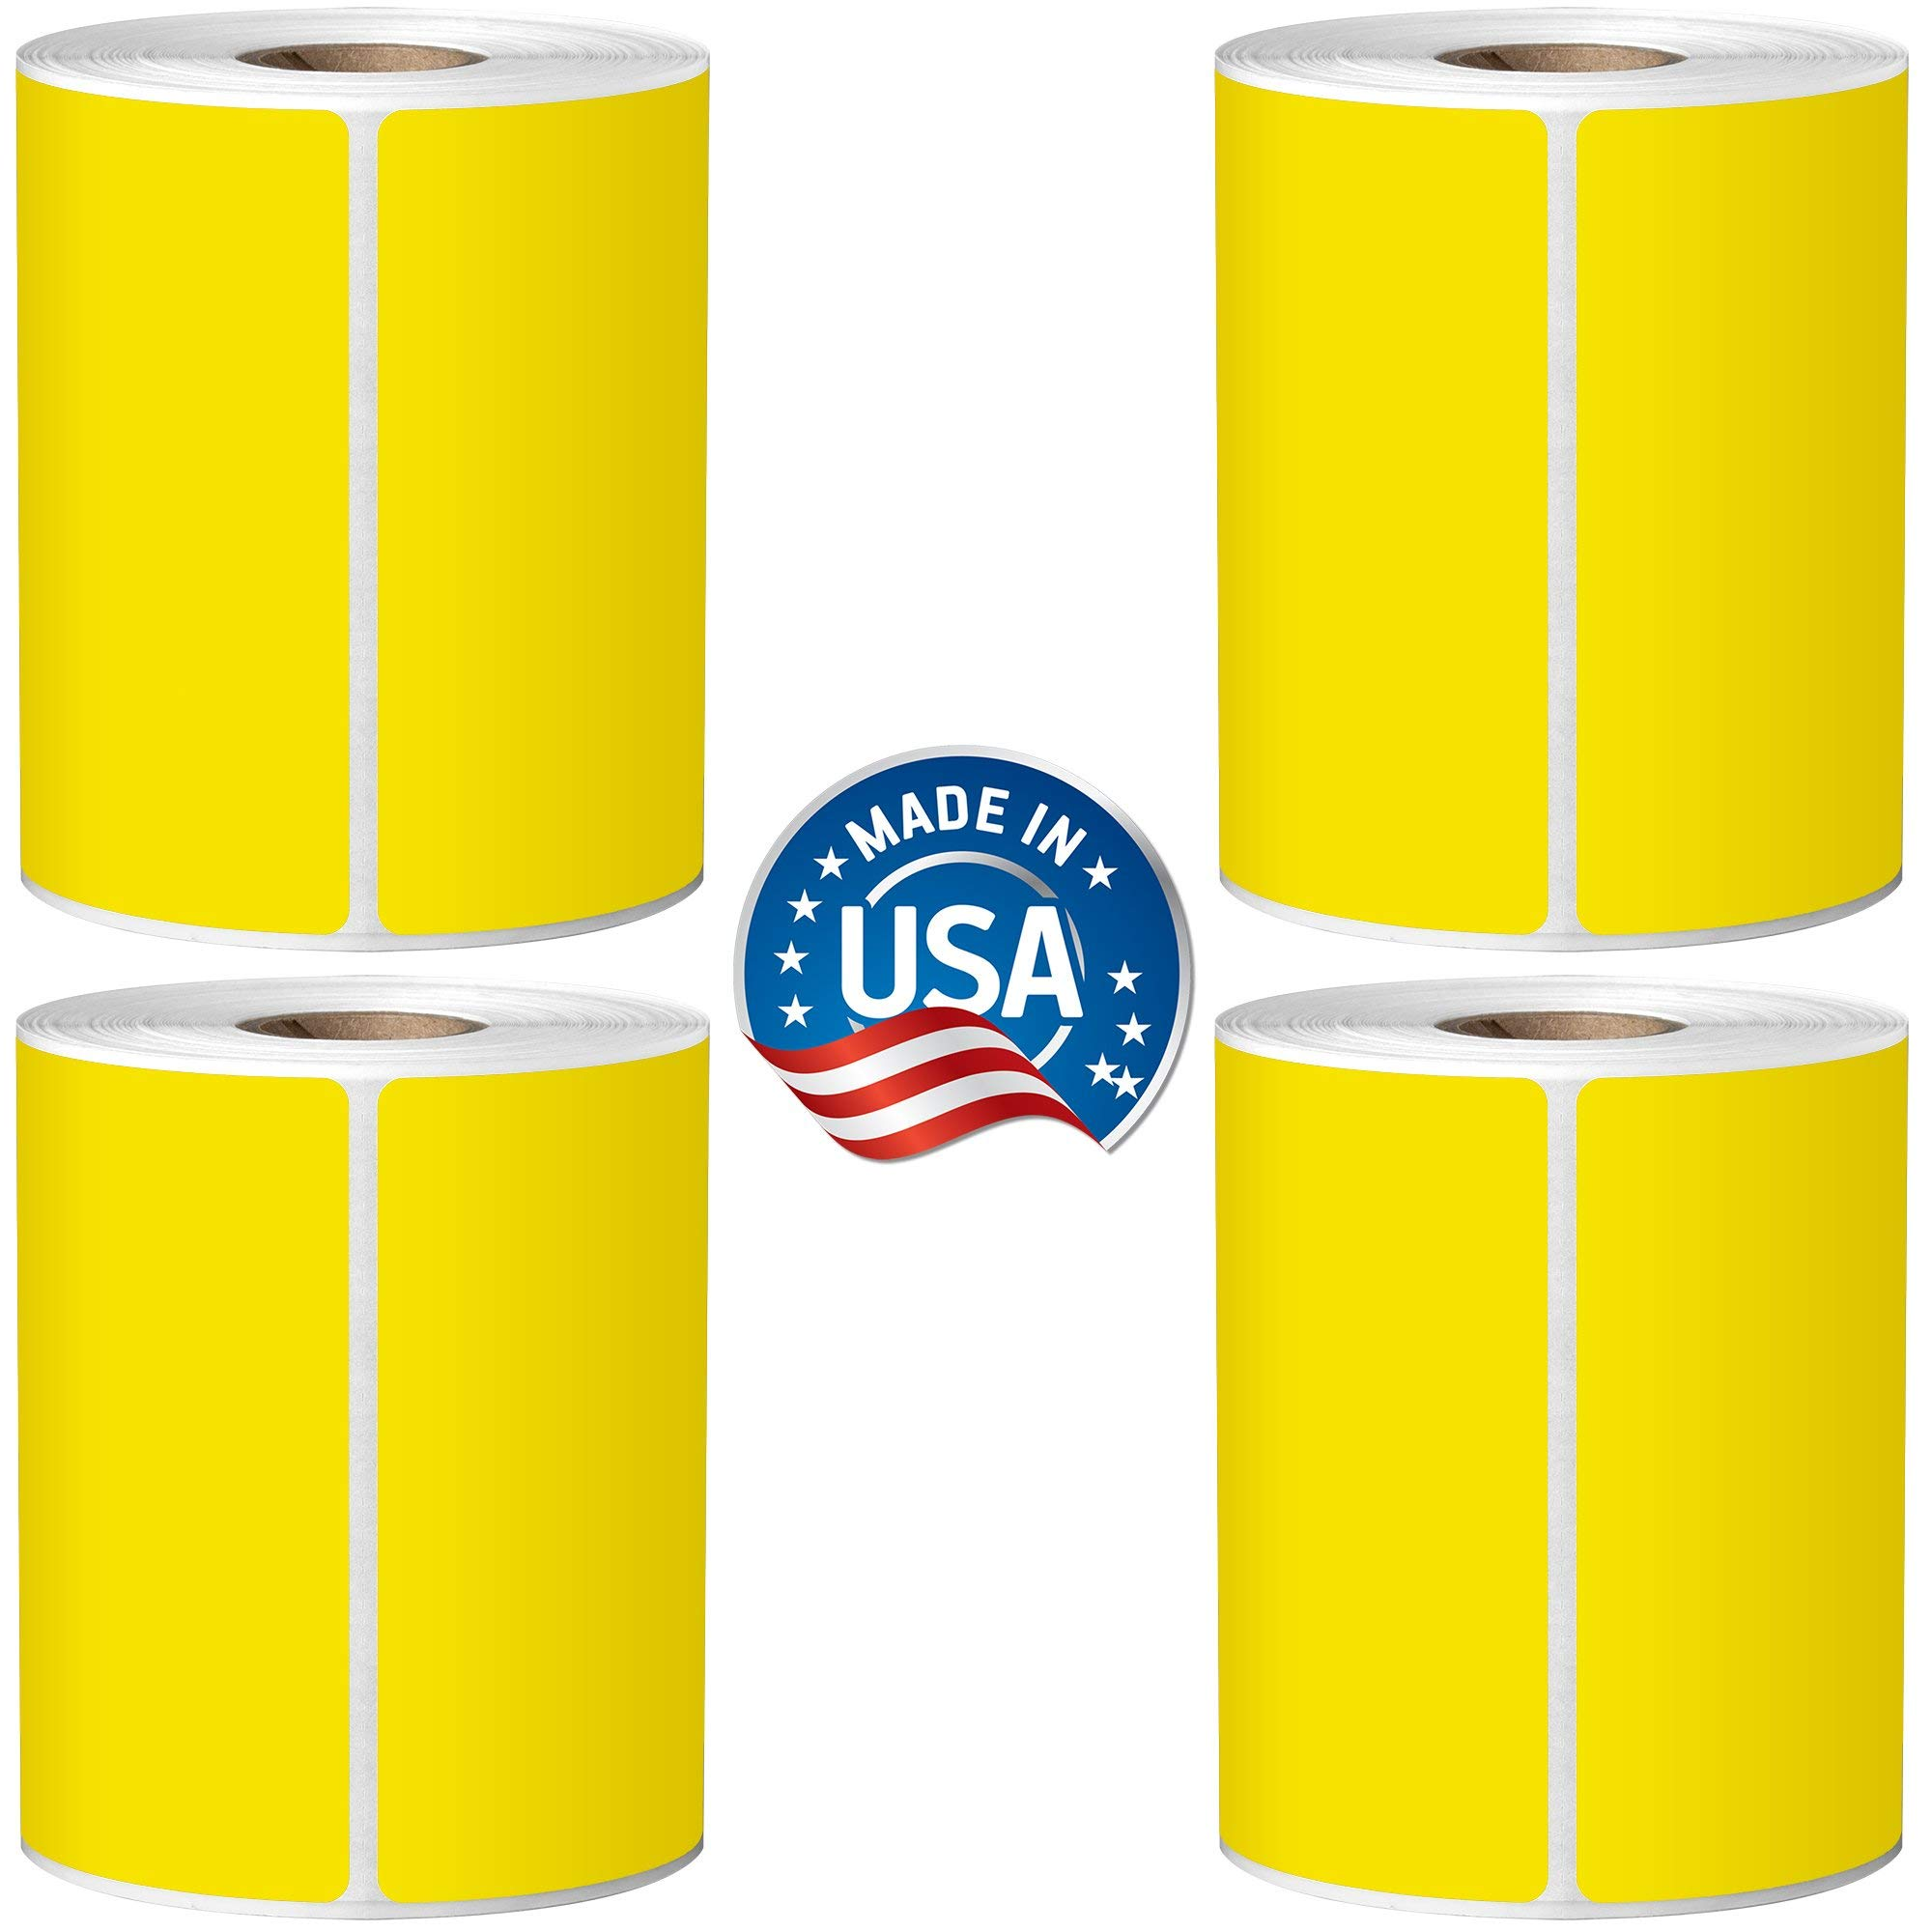 Direct Thermal Labels - 4'' x 6'' - Yellow - 1'' Core - Works with Zebra Thermal Desktop Printers, Datamax, Sato, Intermec and Honeywell Printers - Made in USA by Labels for Us